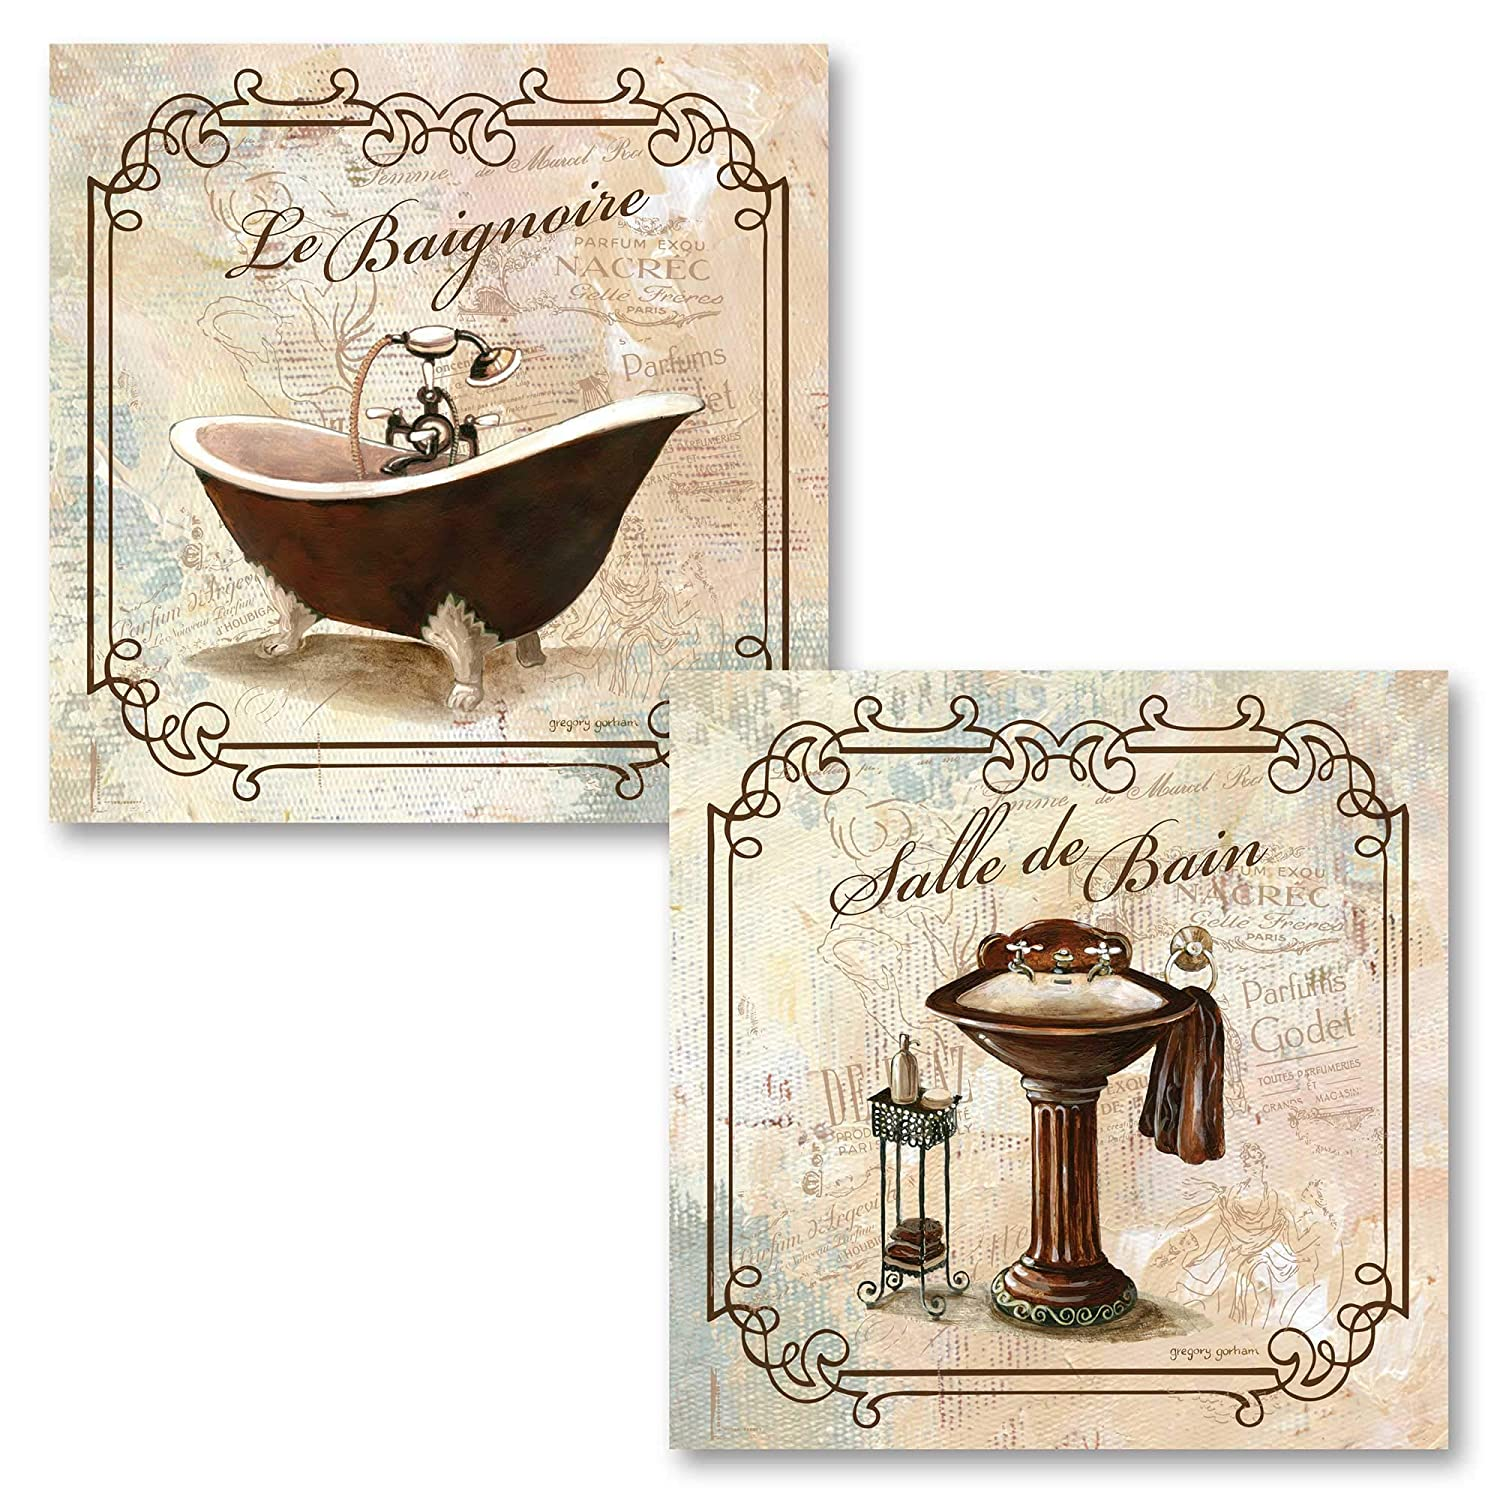 "Classic French Clawfoot Bathtub and Pedestal Sink Salle De Bain and Le Baignoire by Gregory Gorham- 2-12x12"" Unframed Paper Posters"